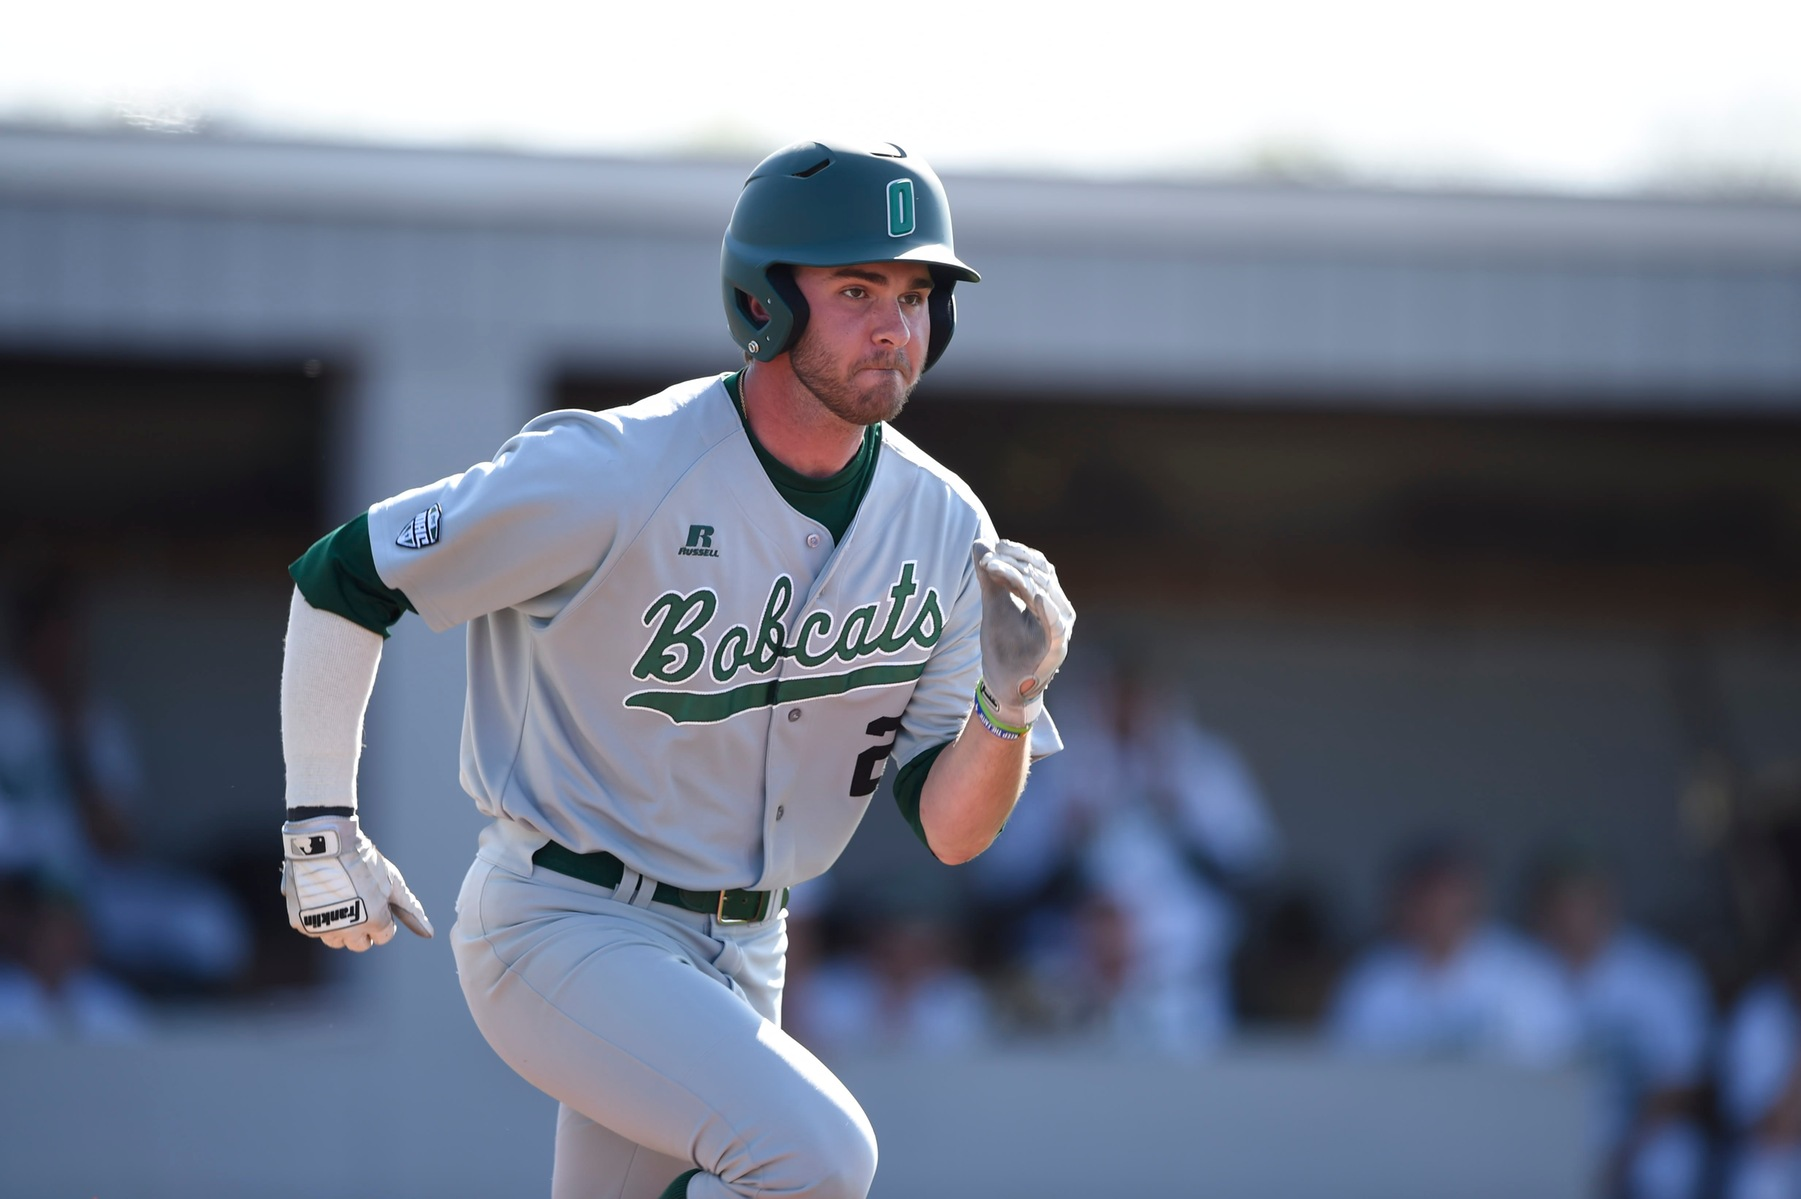 Ohio Baseball Falls To Rider In Extras In Series Finale